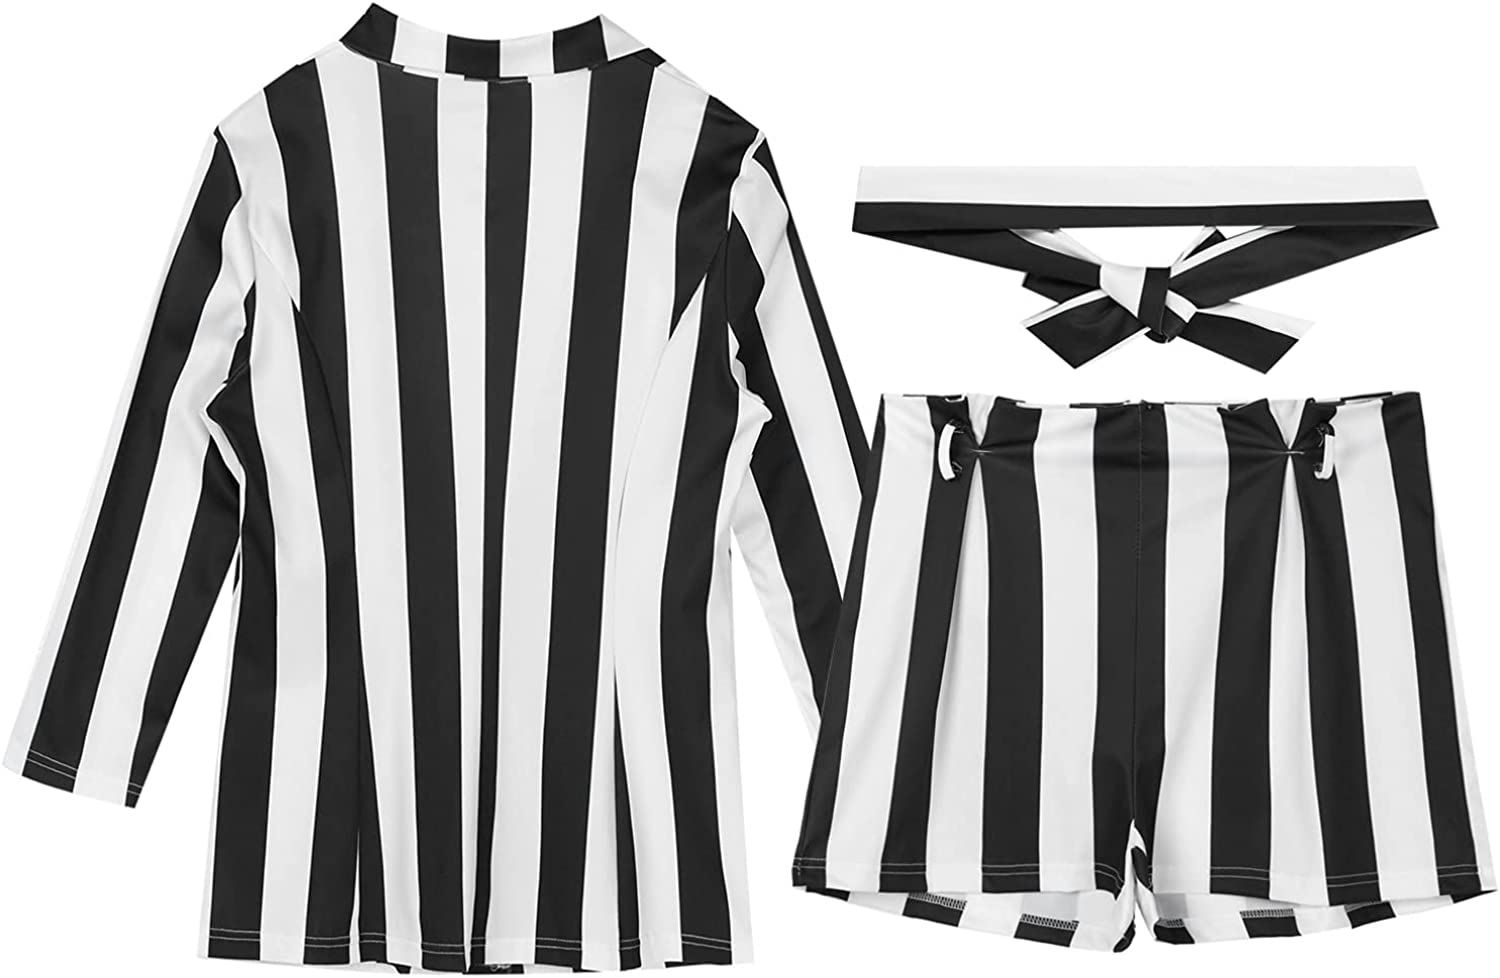 FEESHOW Womens 2 Pieces Blazer Outfits Sexy Striped 3/4 Sleeve Blazer Jacket and Shorts Jumpsuit Set